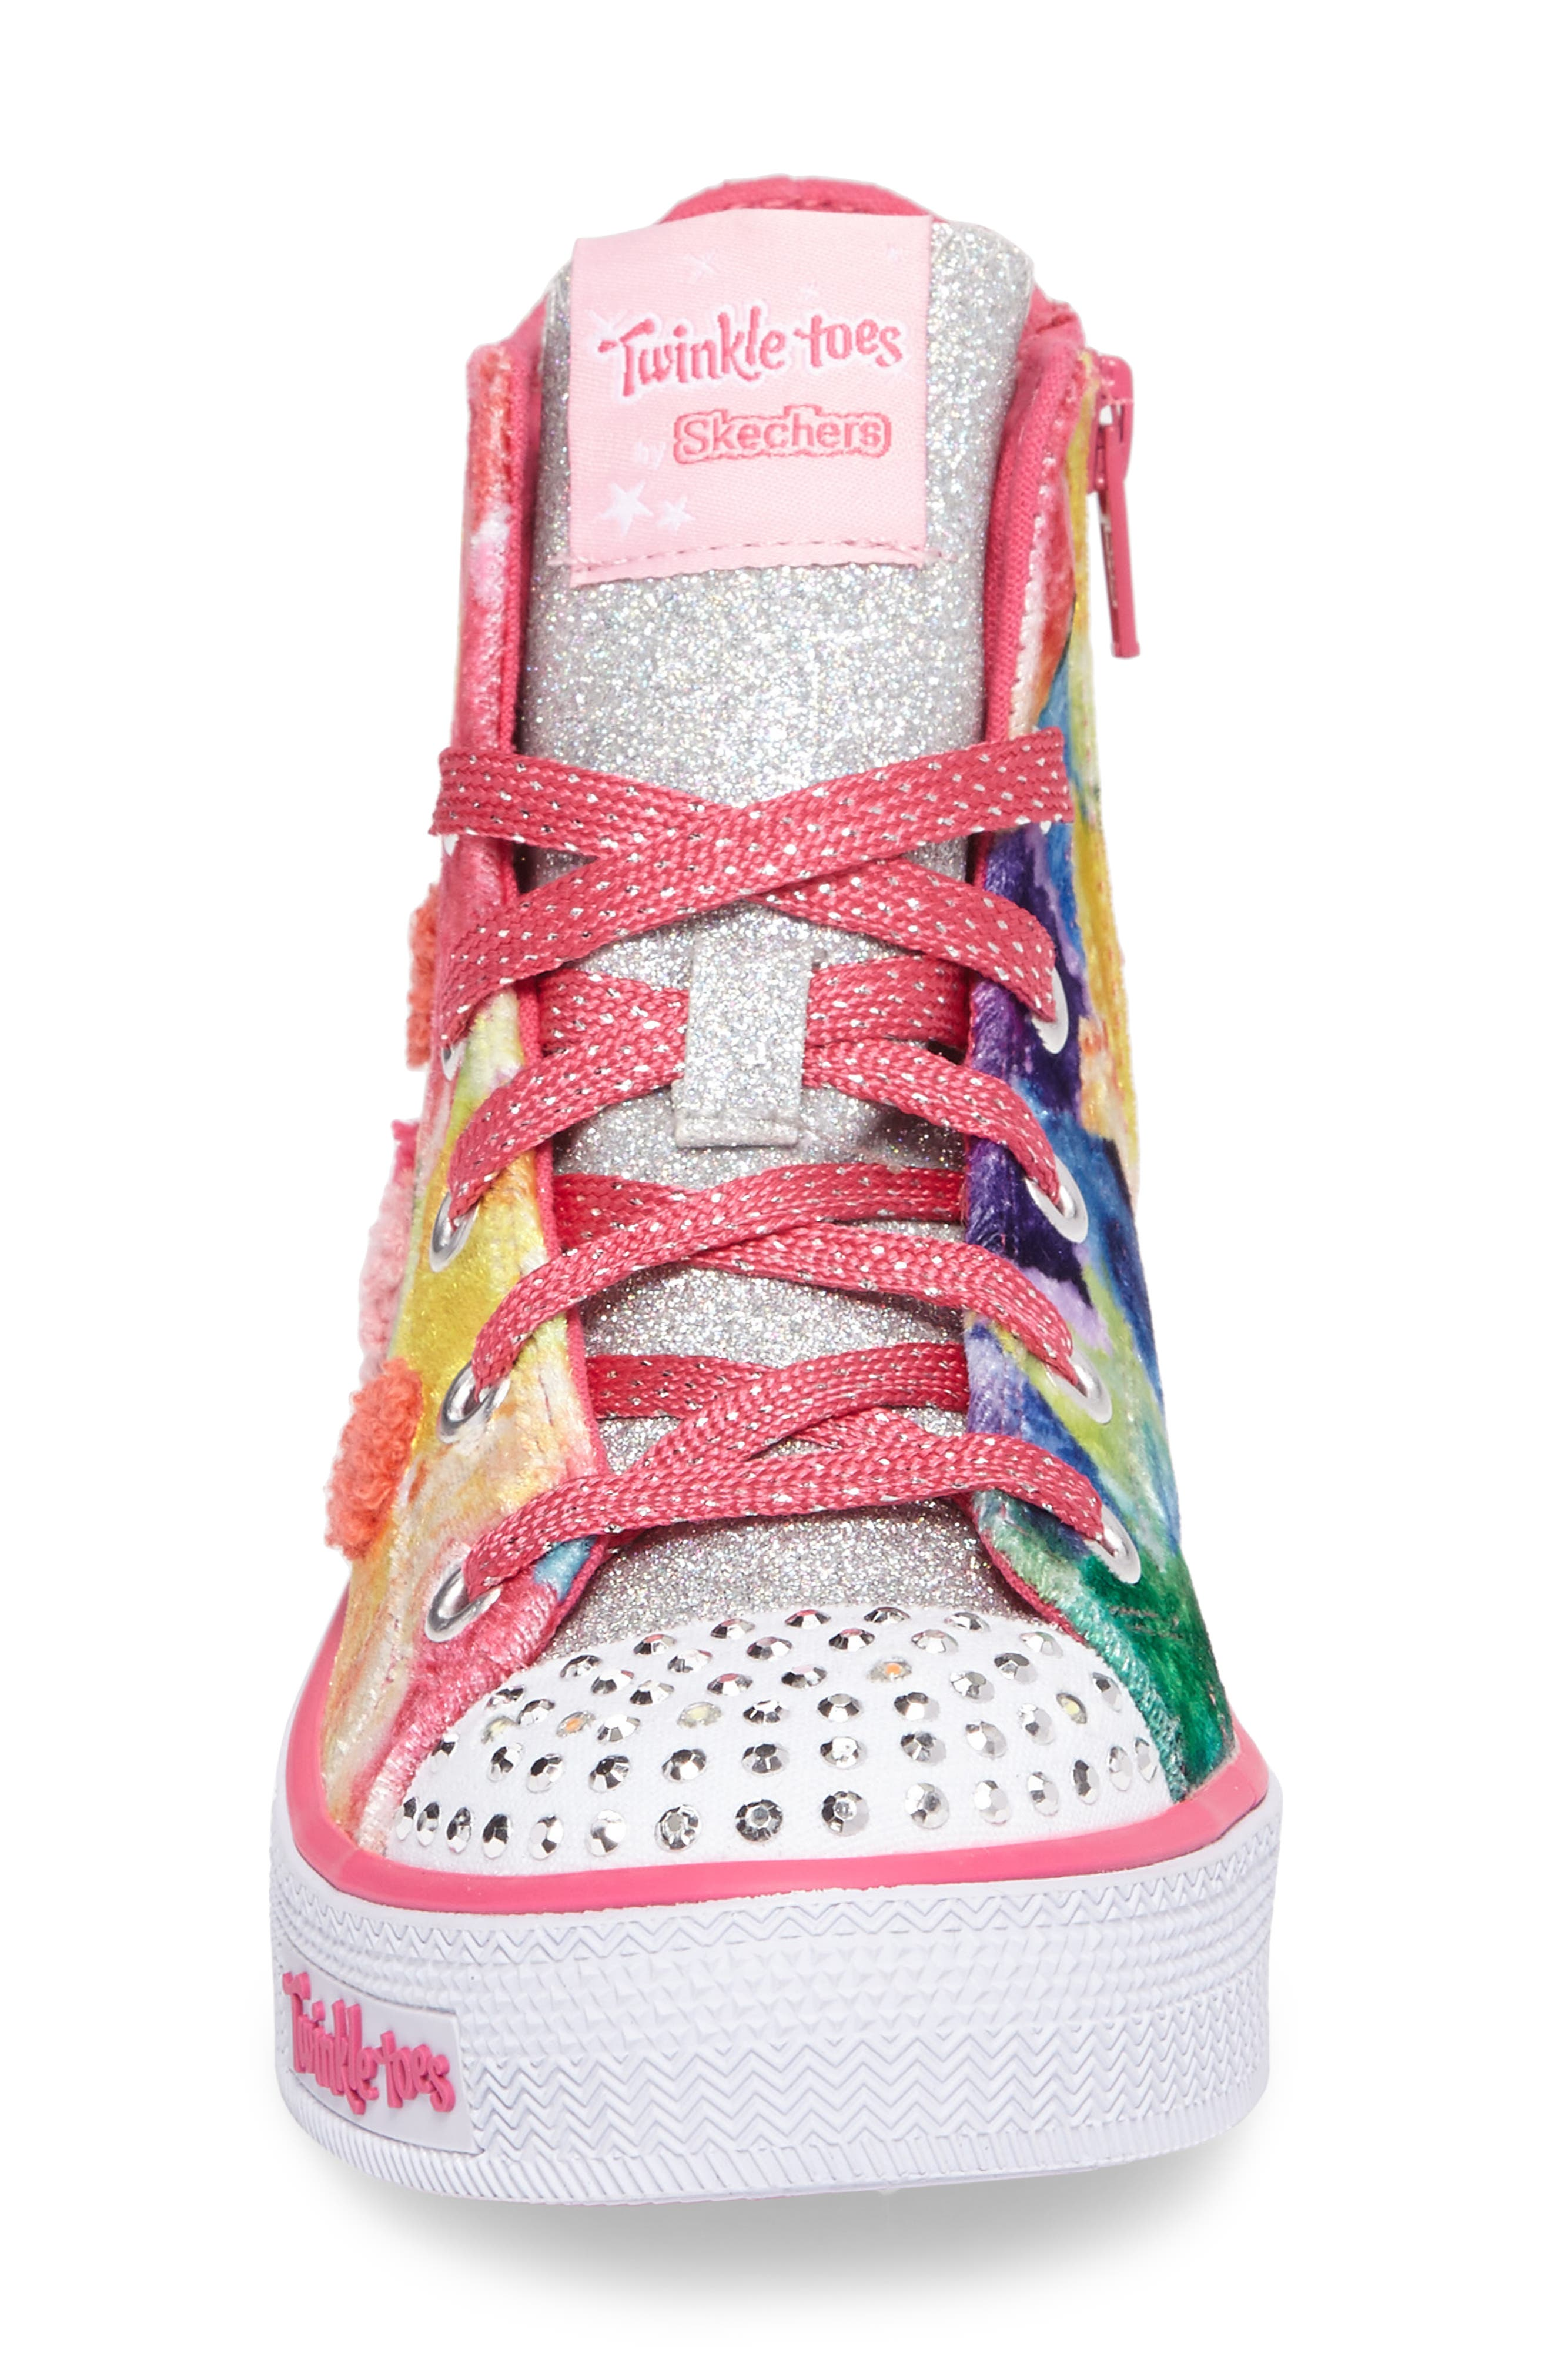 Twinkle Toes Shuffles Light-Up High Top Sneaker,                             Alternate thumbnail 4, color,                             Hot Pink/ Multi